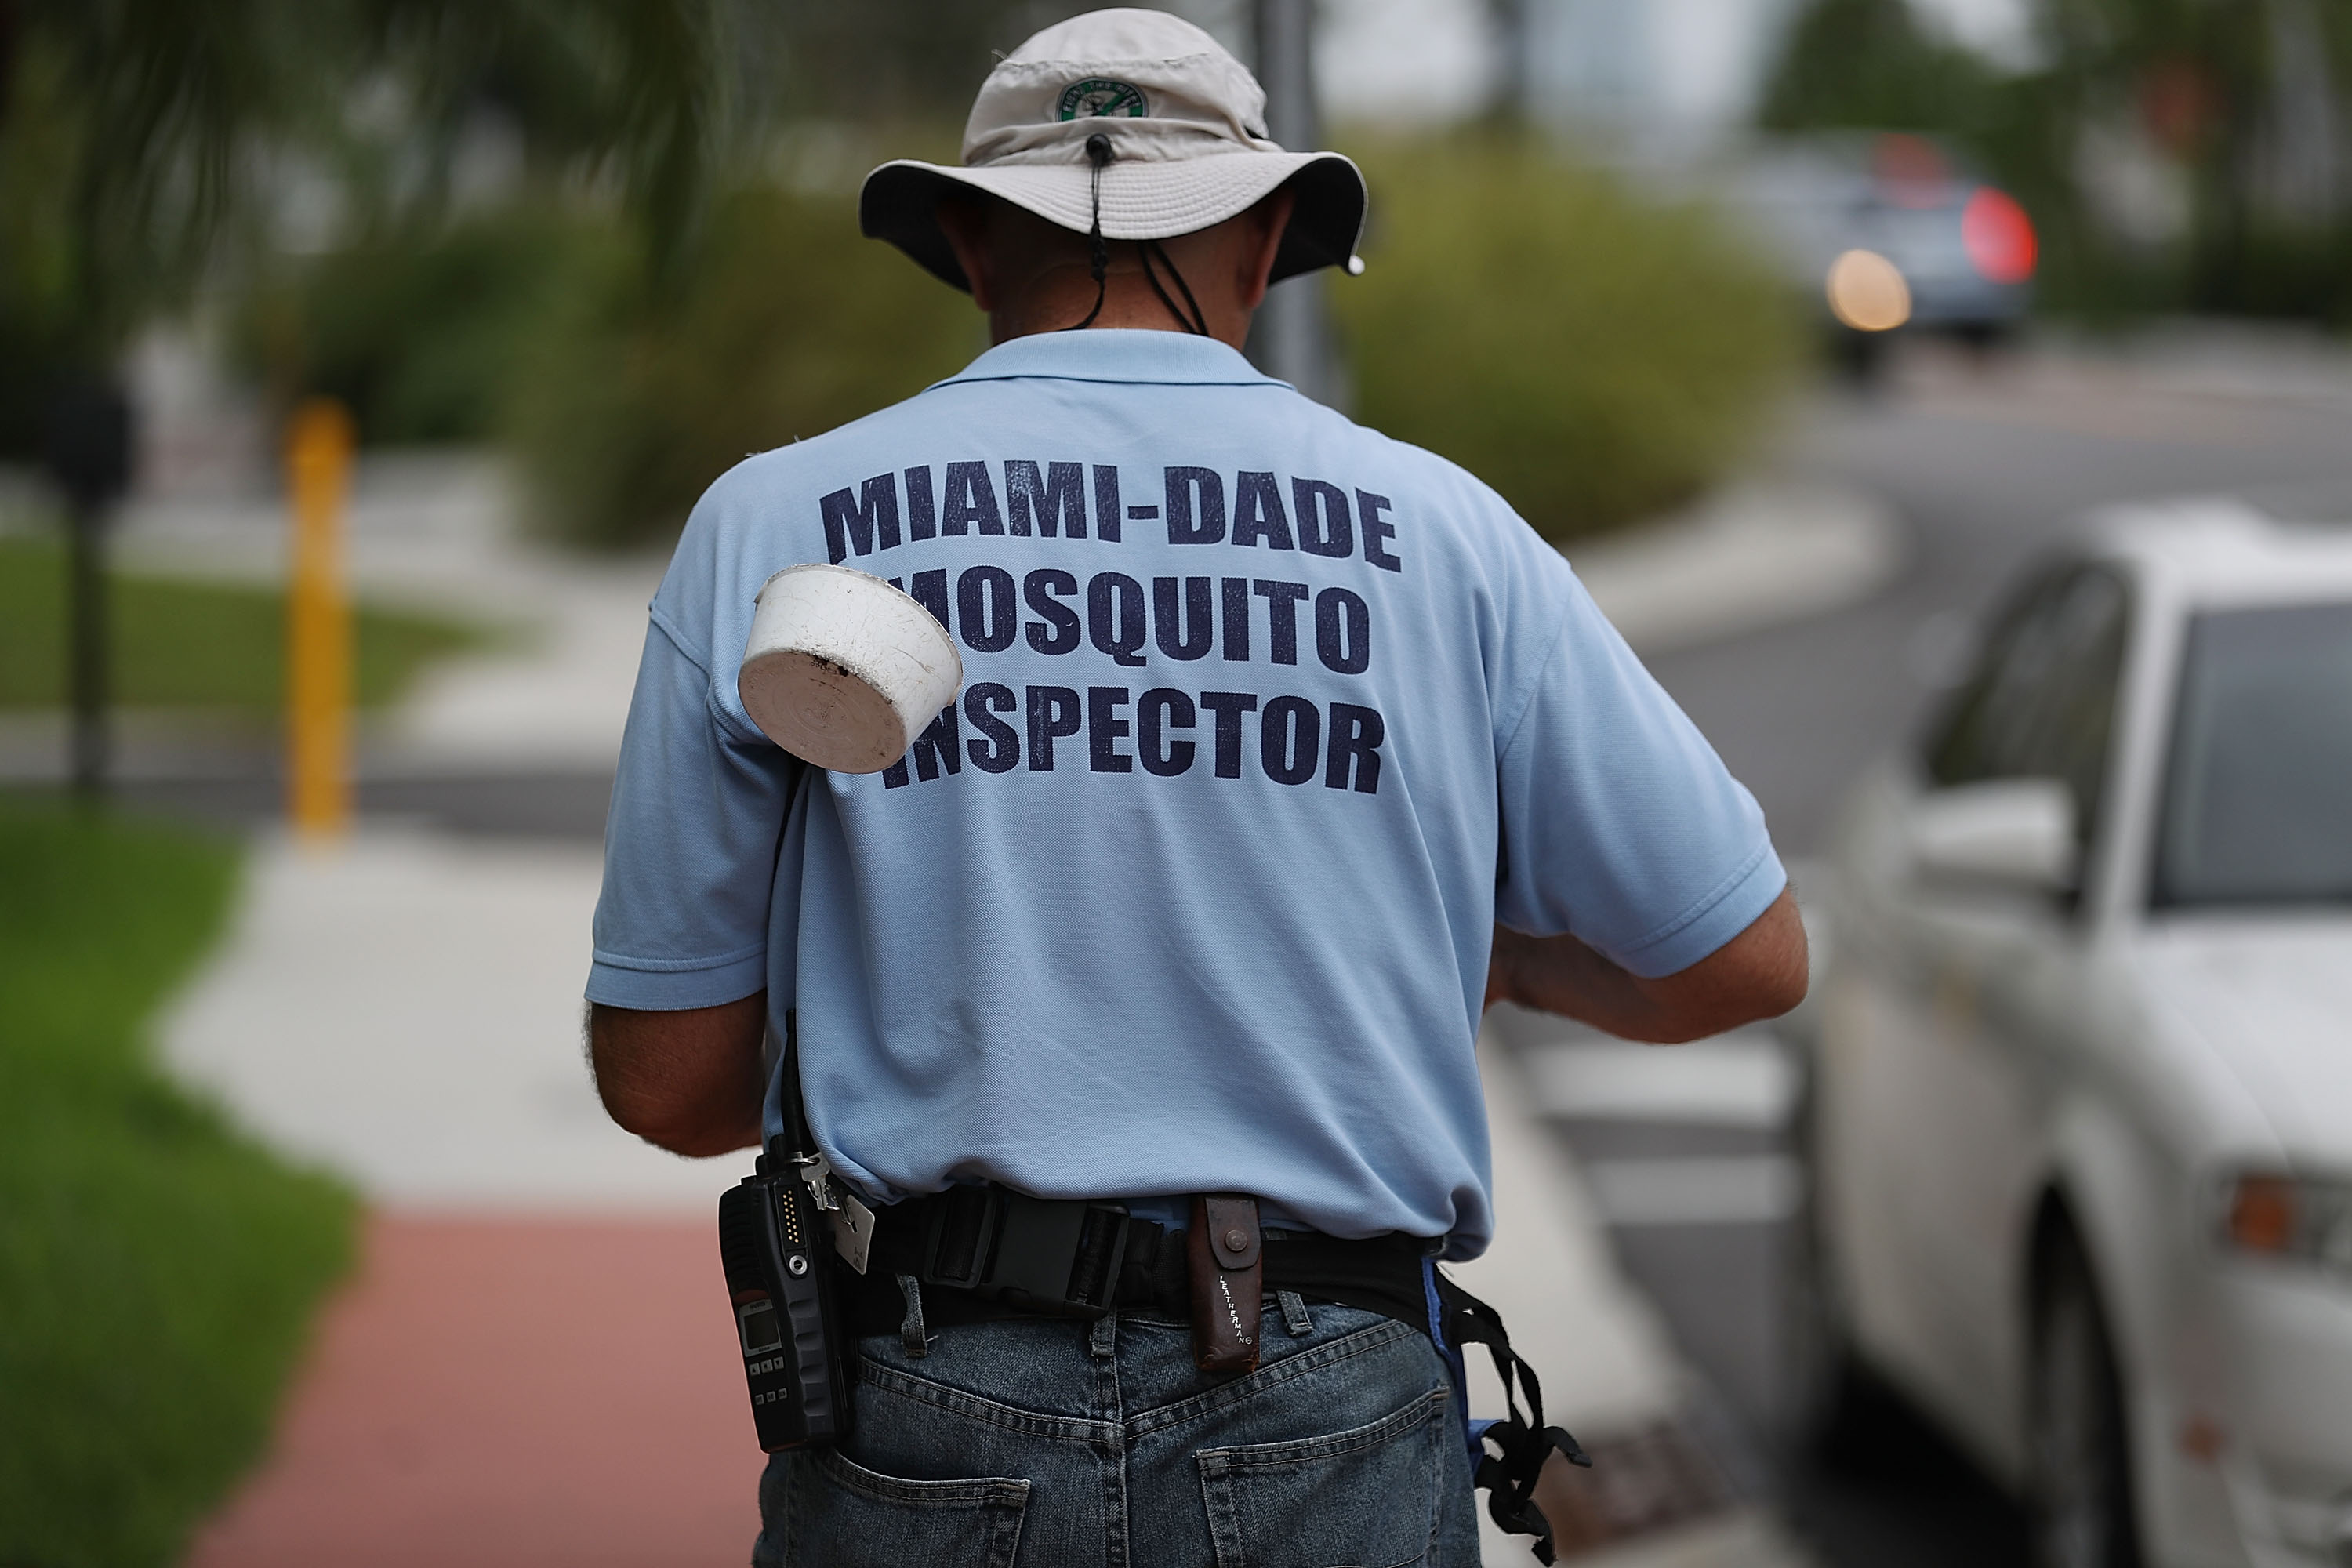 A Miami-Dade County mosquito control inspector, walks through the streets looking for places that might hold breeding mosquitos that are carrying the Zika virus on September 2, 2016 in Miami Beach, Florida.